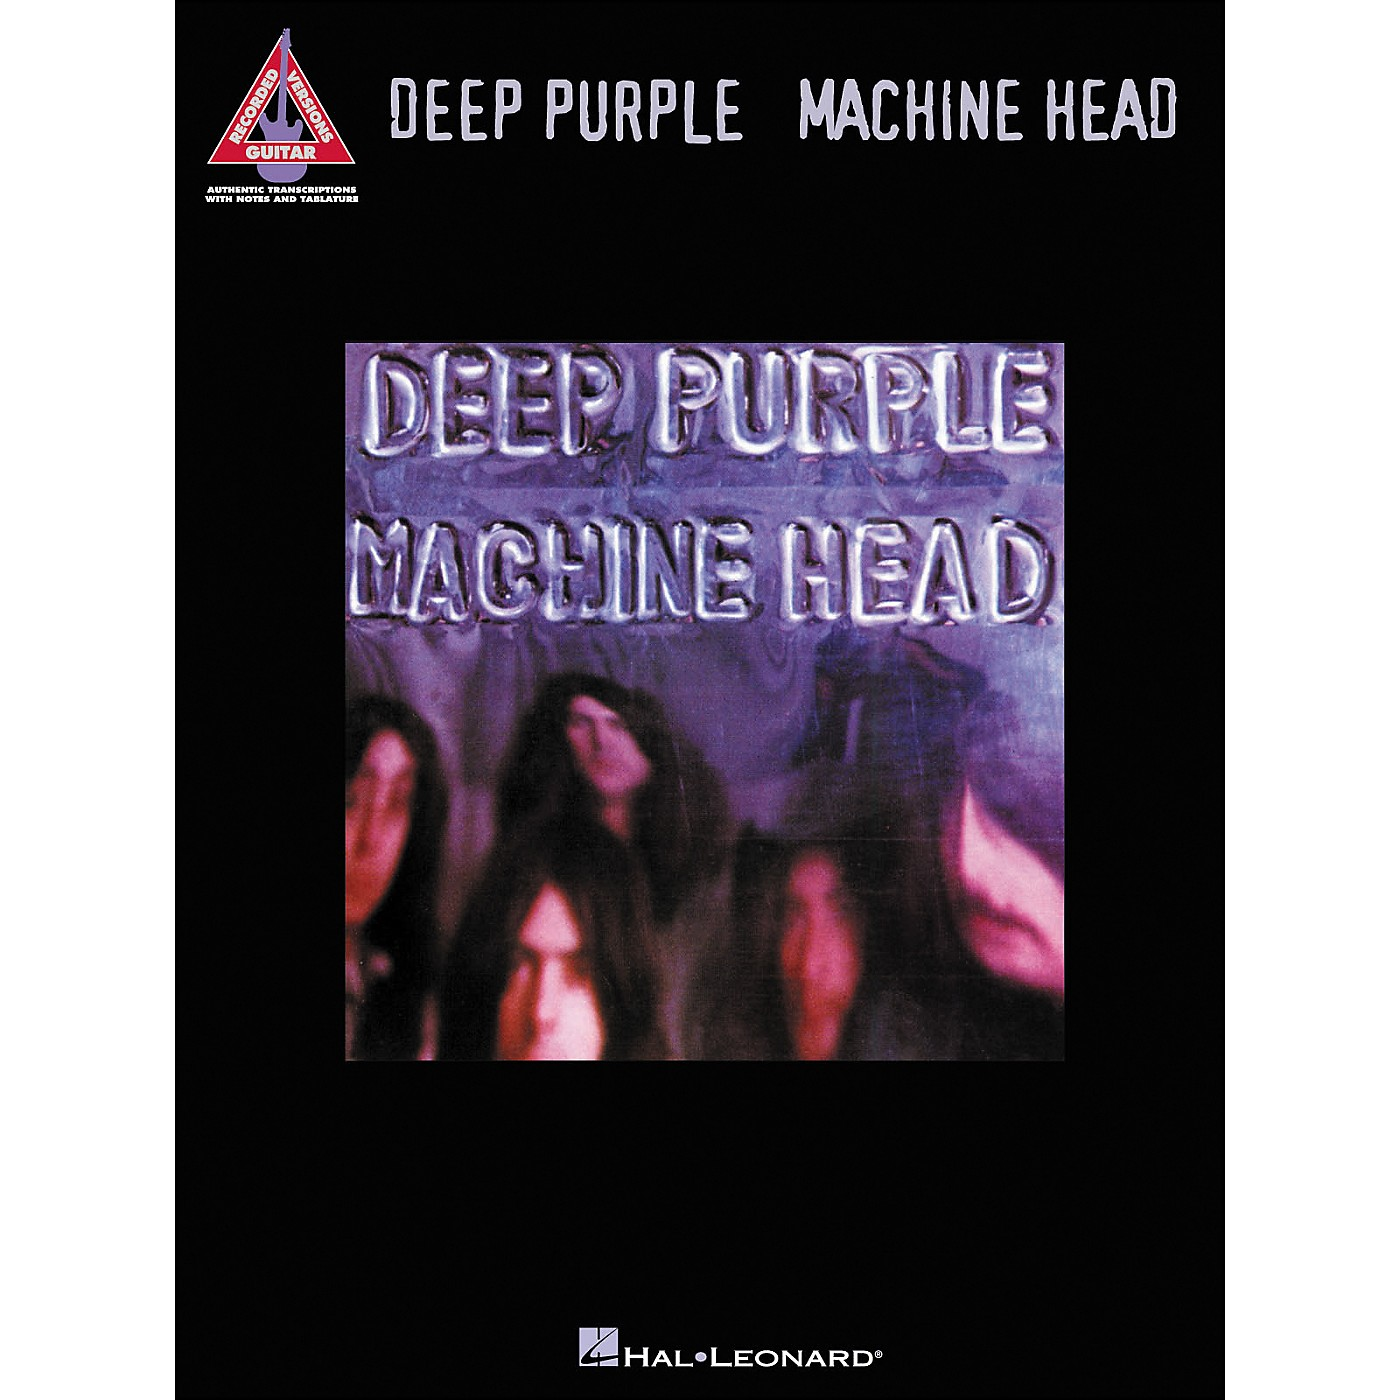 Hal Leonard Deep Purple Machine Head Tab Book thumbnail